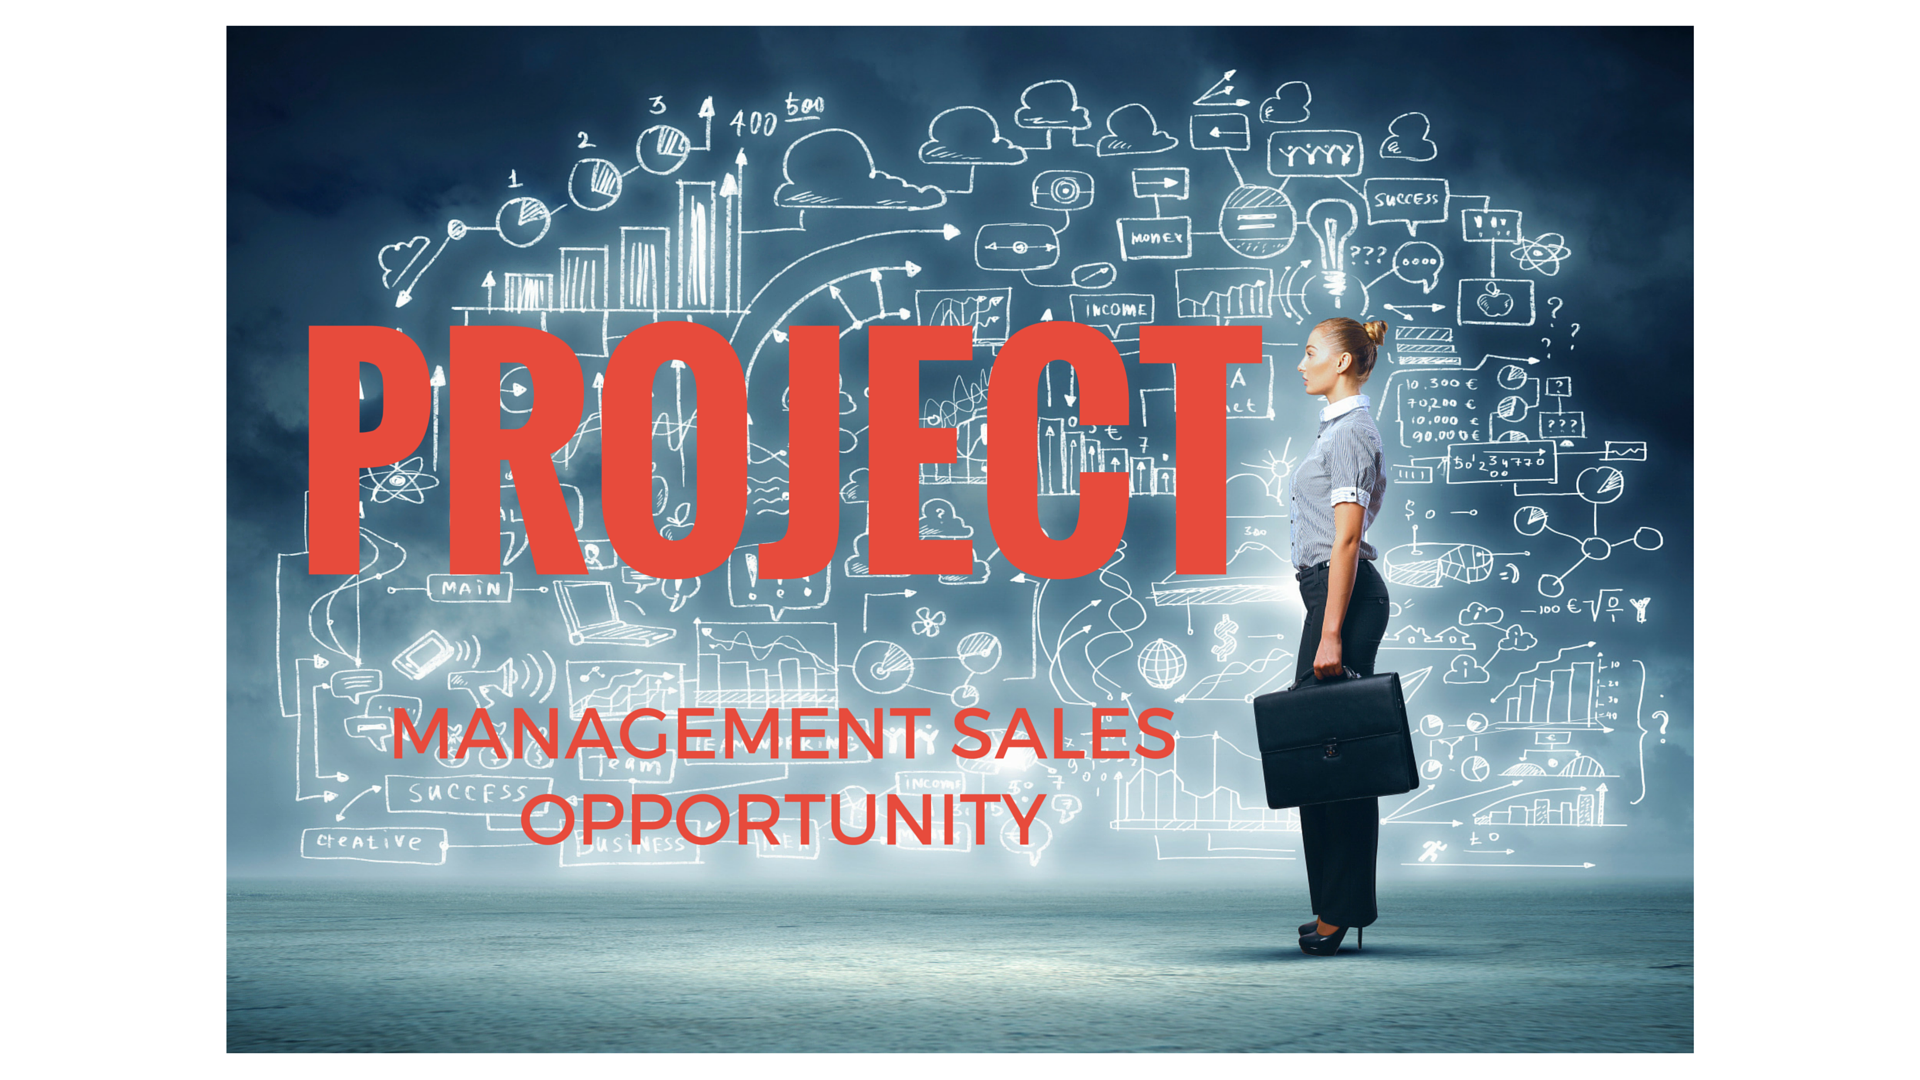 Project management solutions sales opportunity